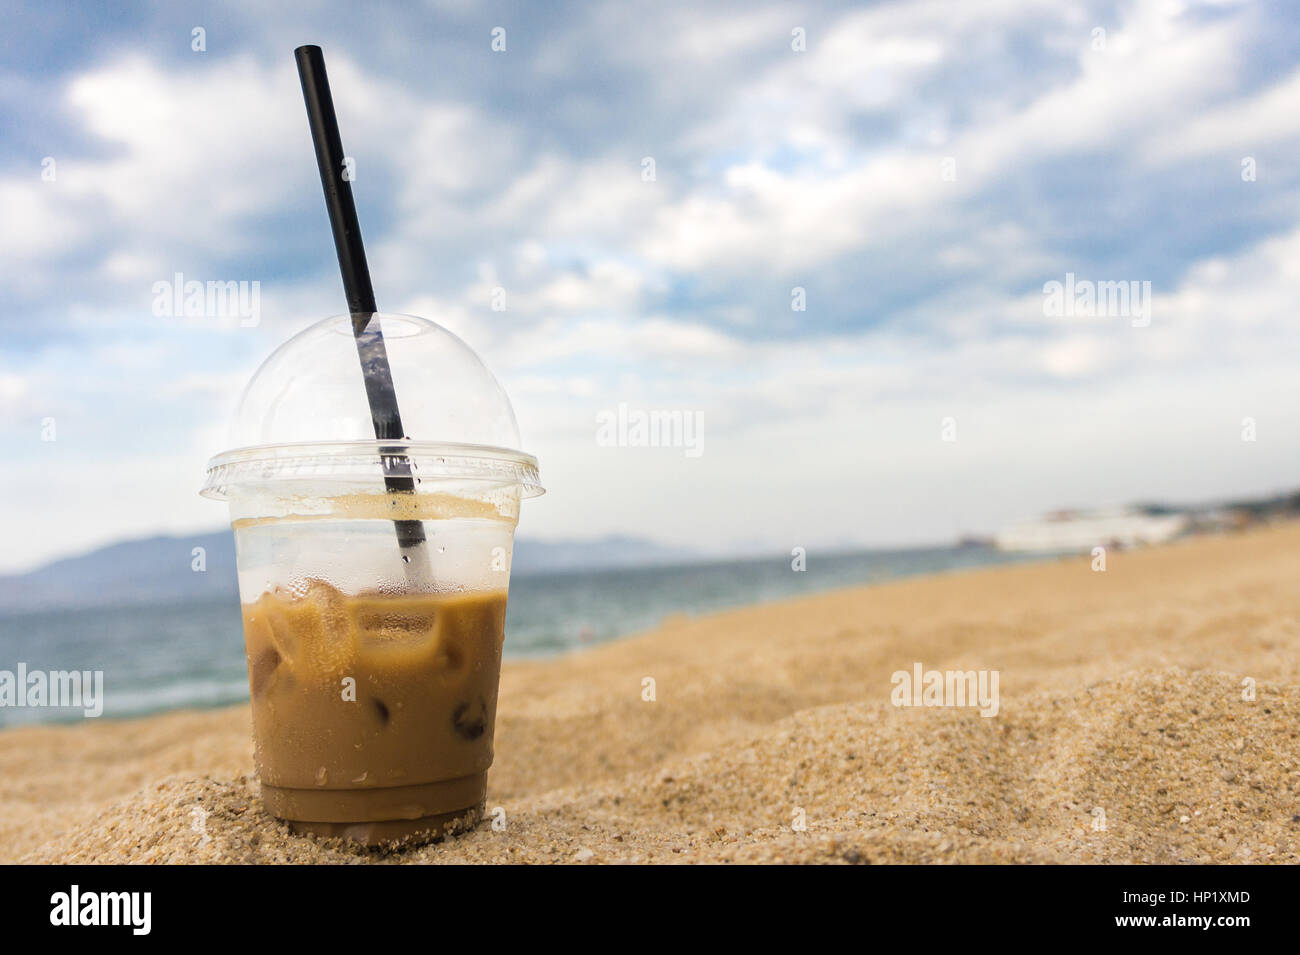 glass with black straw iced coffee is in the sand on the seashore. - Stock Image